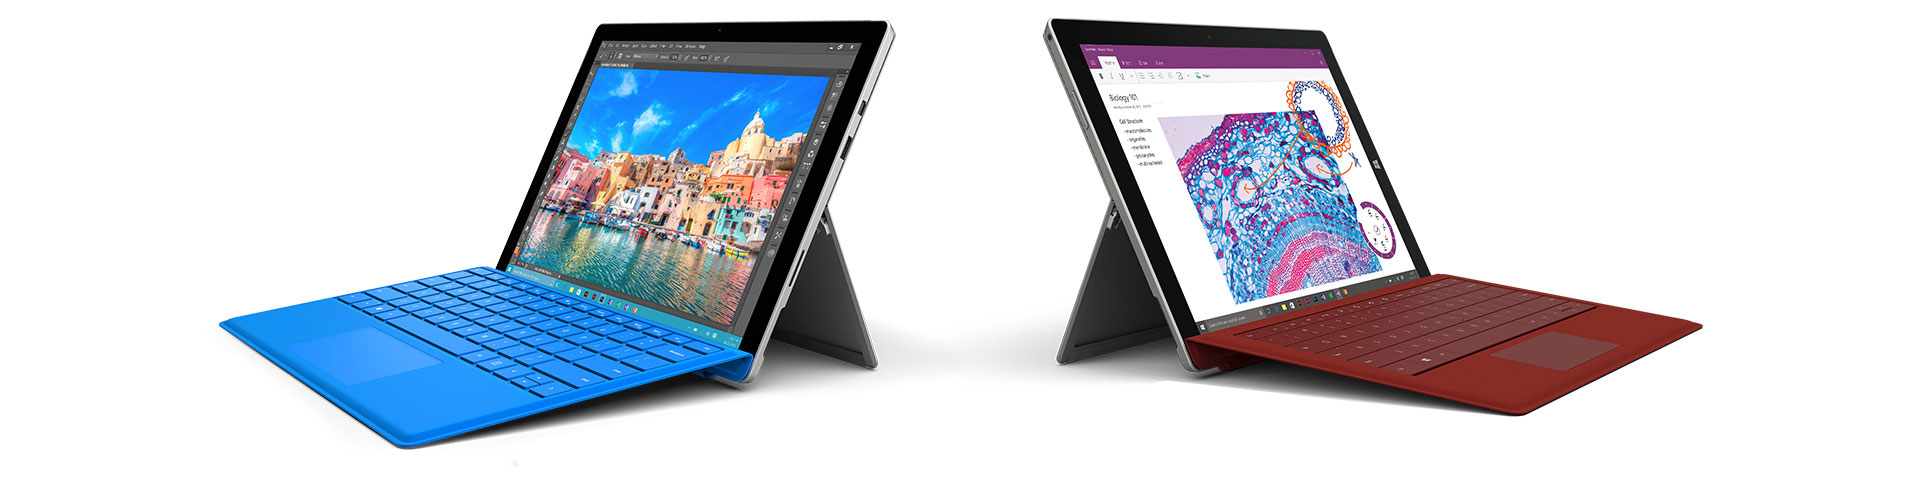 Microsoft Launches Unexpected New Hardware